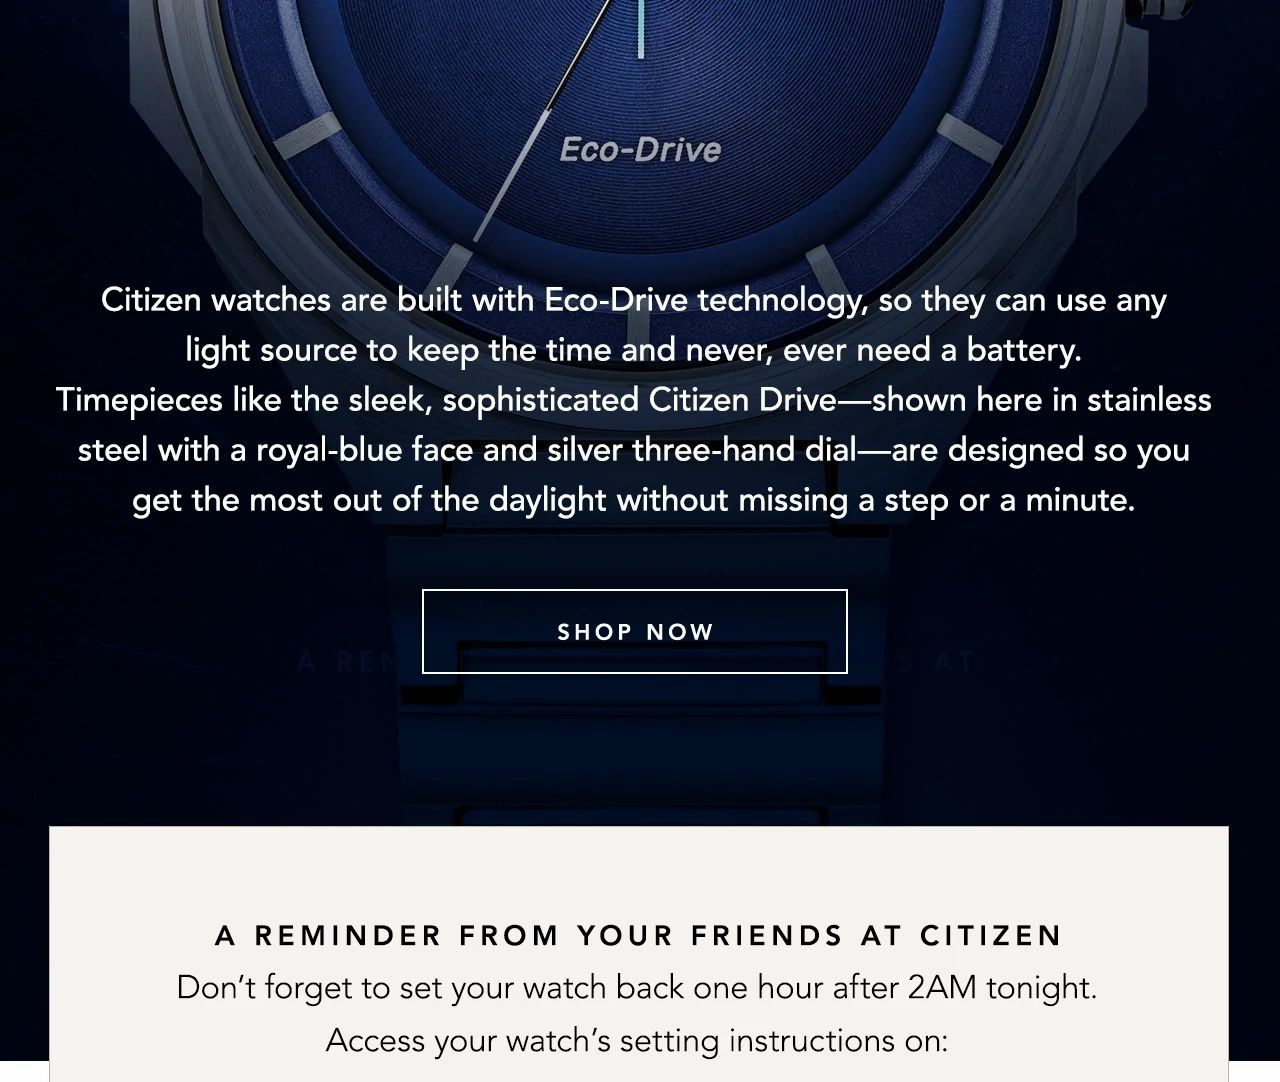 A little reminder from your friends at Citizen: Don't forget to set your watch back one hour ahead after 2am tonight.